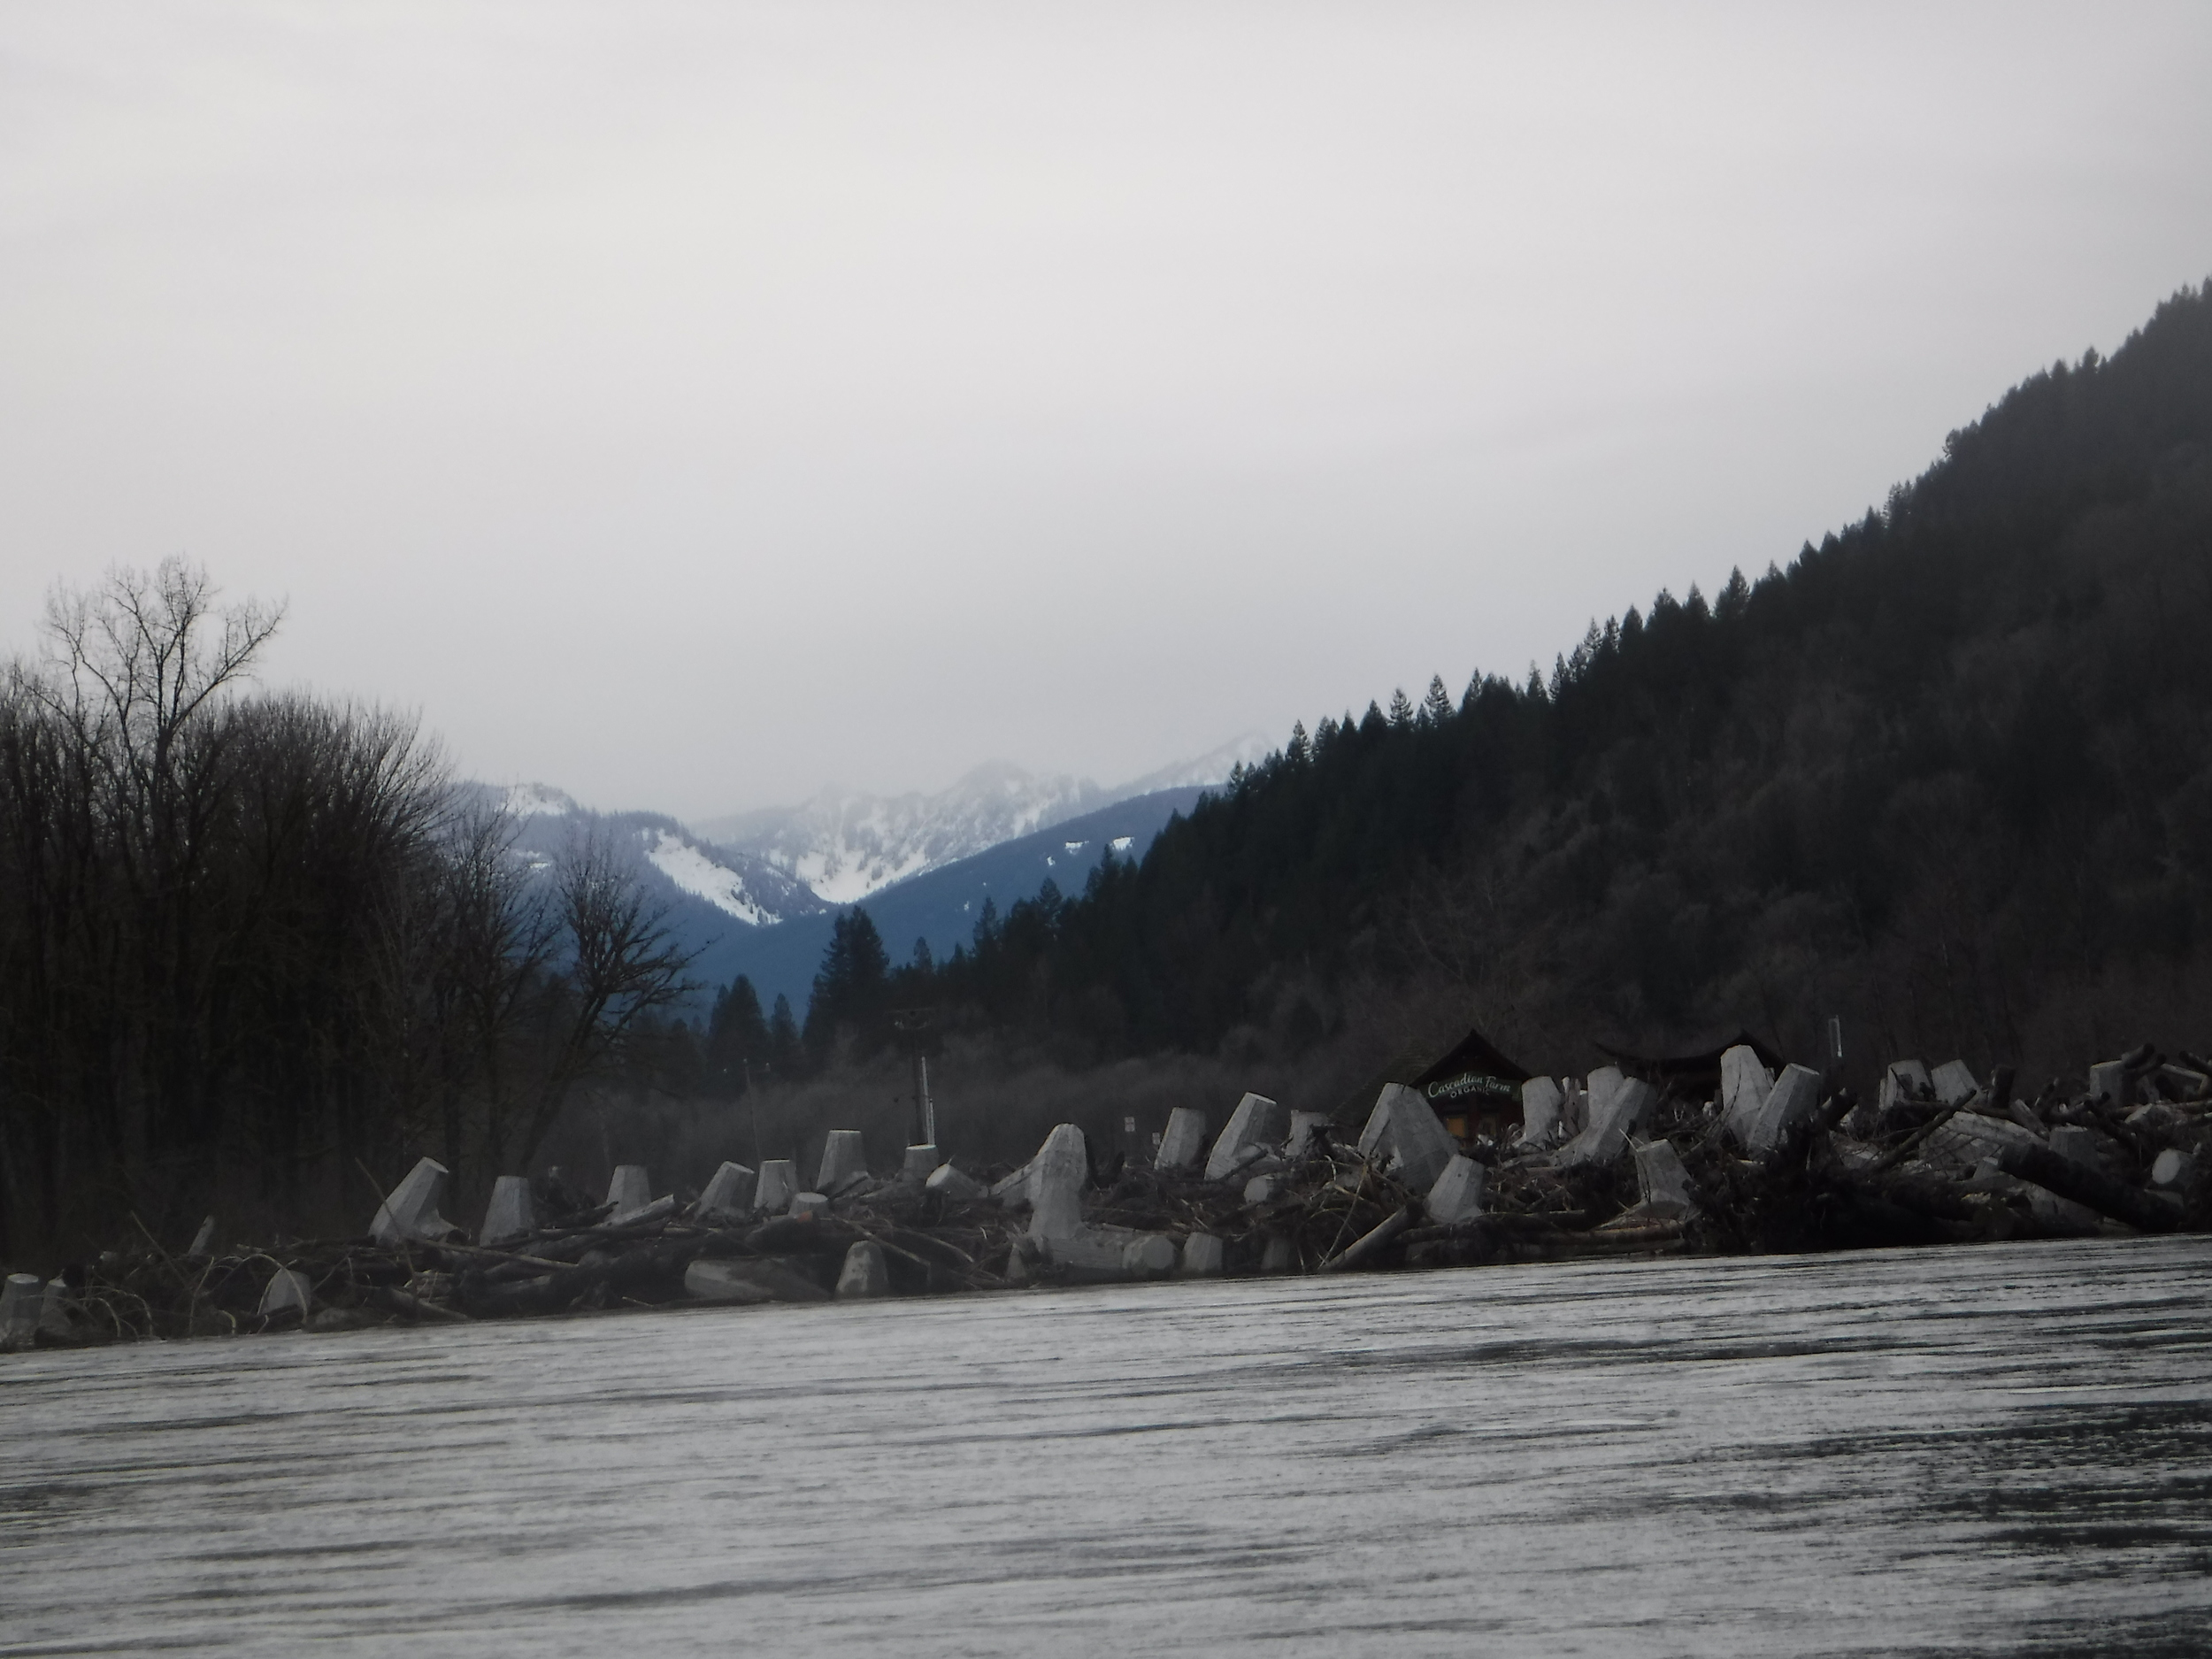 Floating by   Cascadian Farm   with an artificial log-jam.